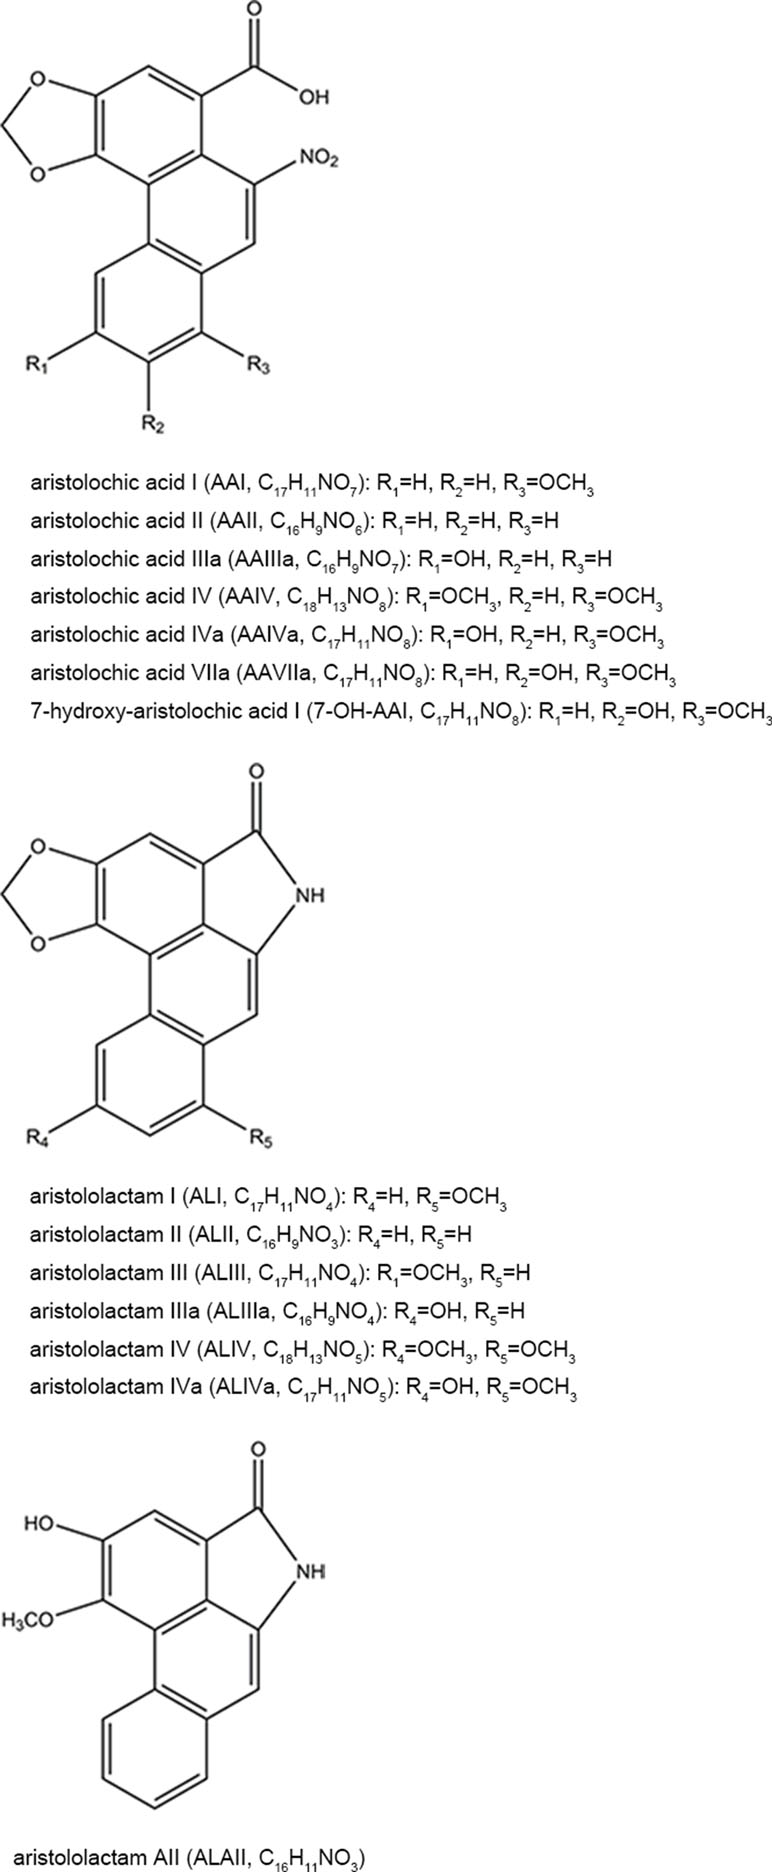 Frontiers | Systematic Overview of Aristolochic Acids